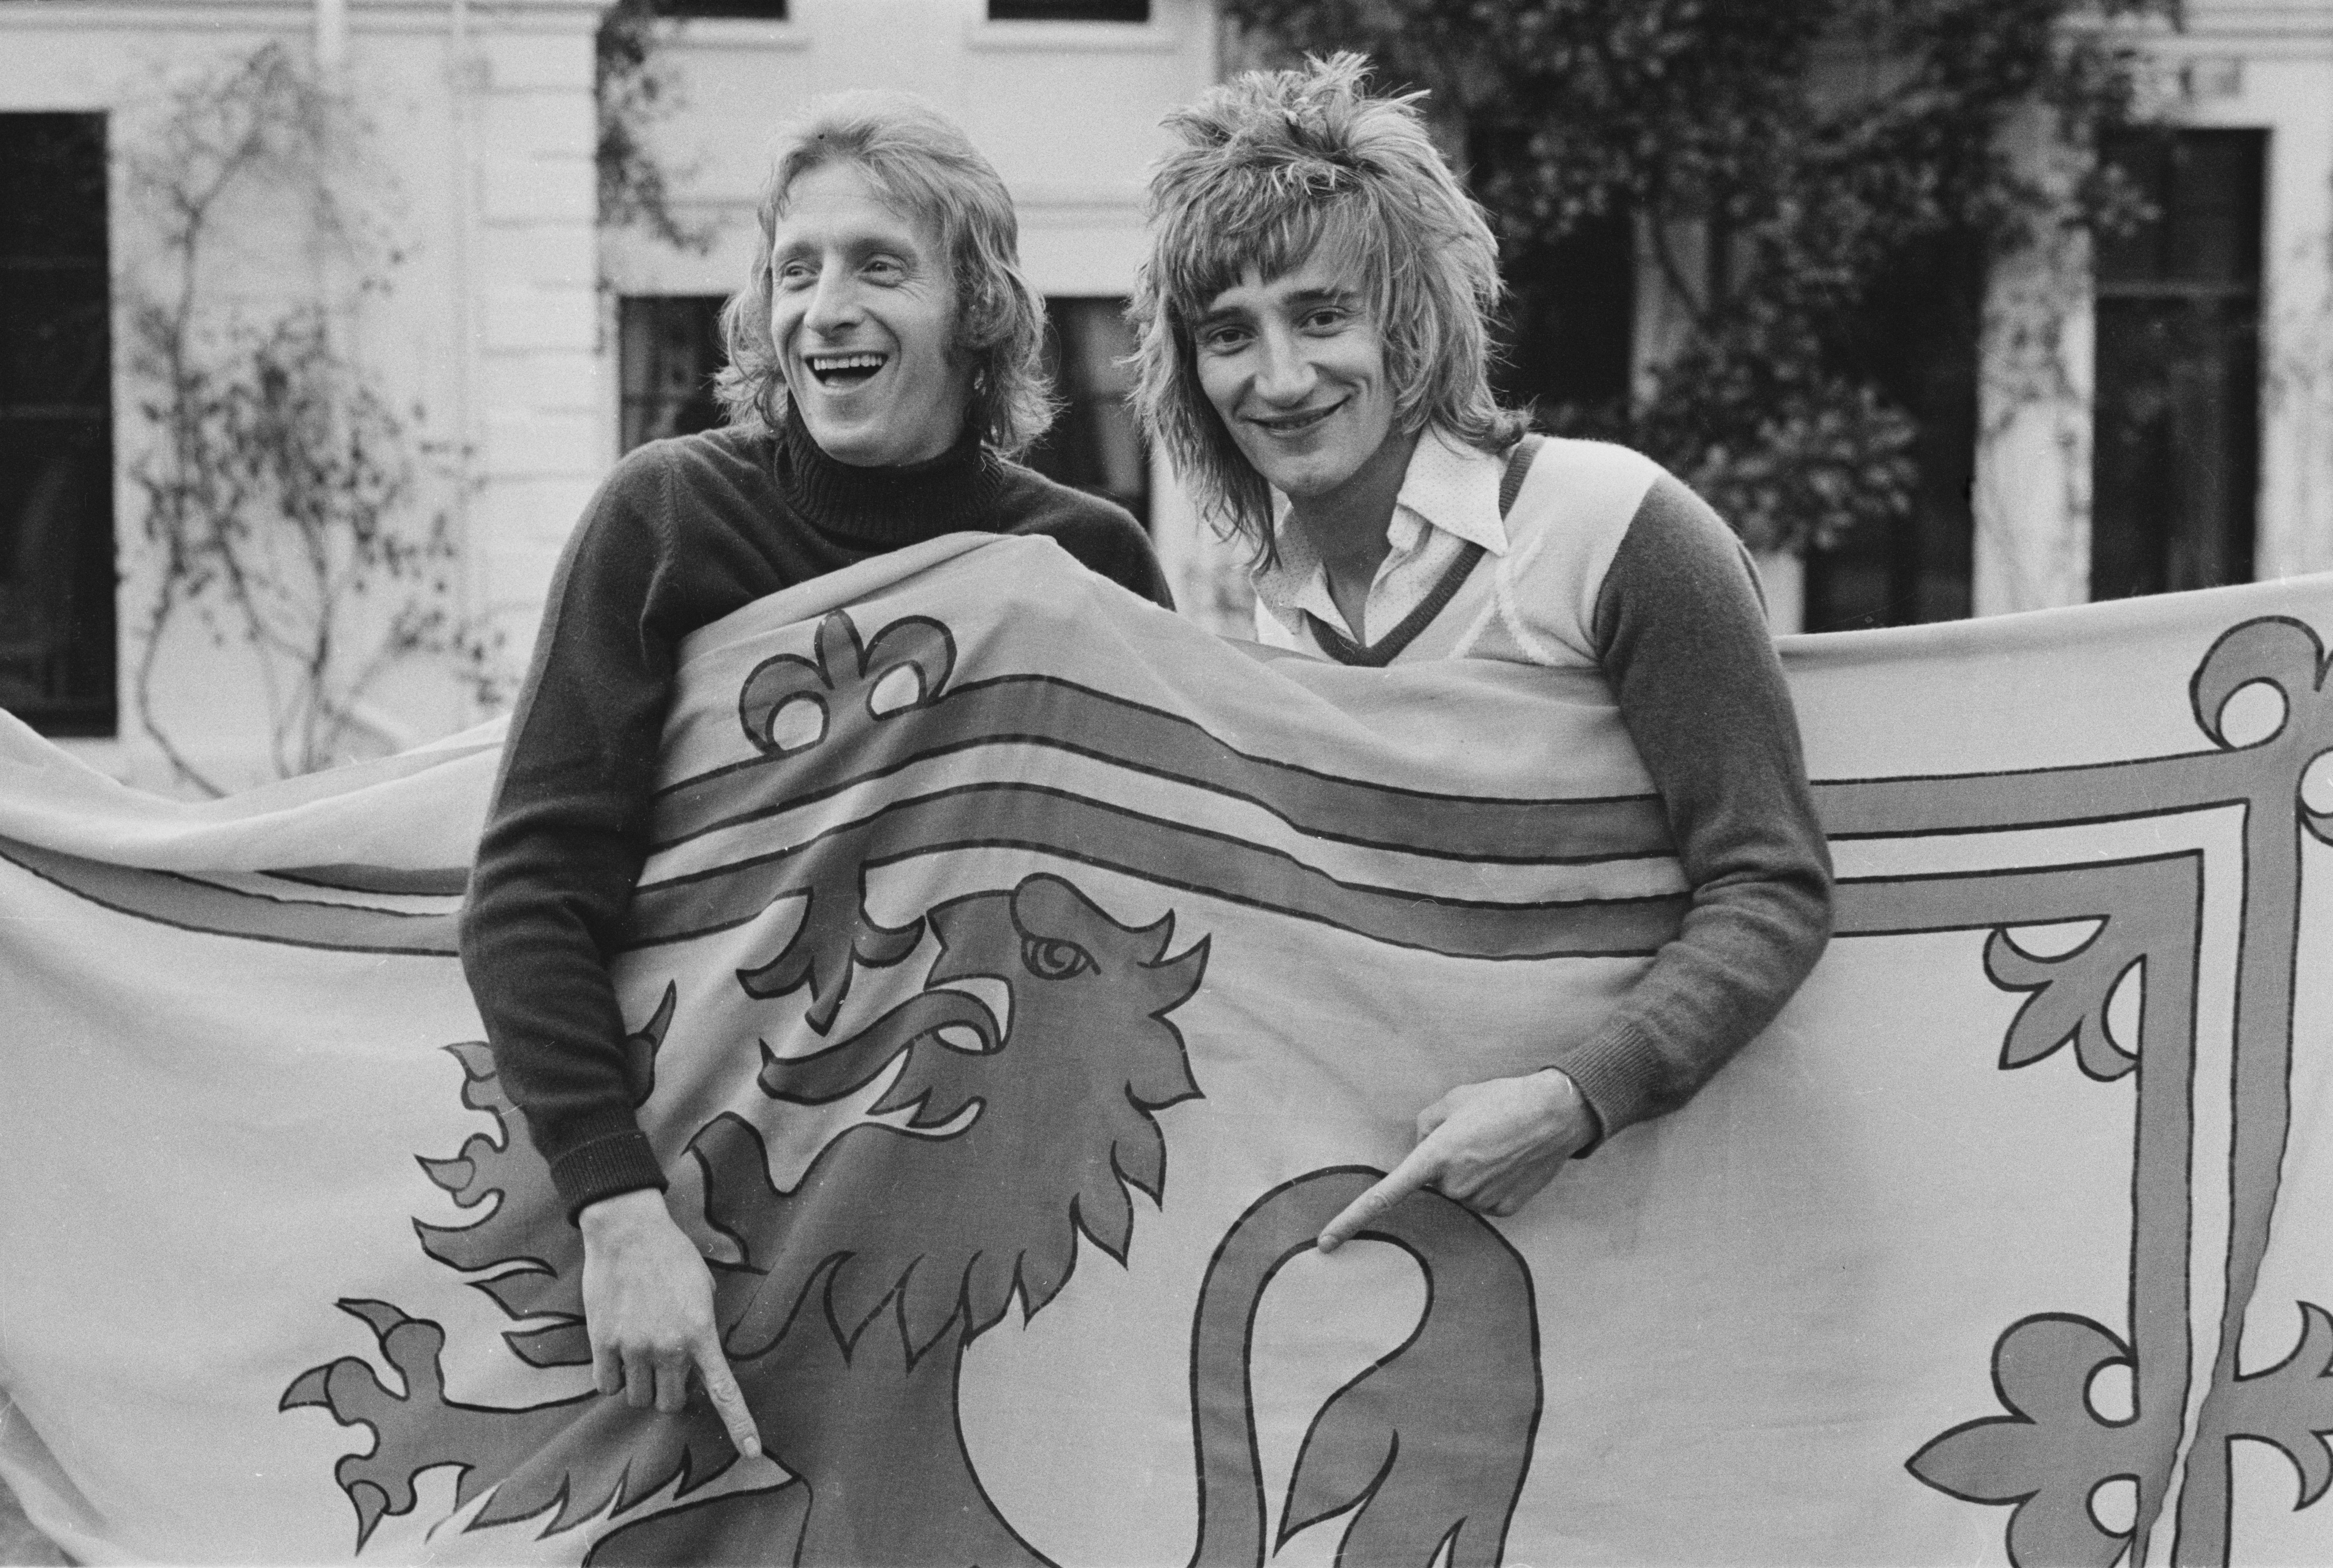 Scottish soccer player Denis Law of Manchester City FC with British singer-songwriter Rod Stewart, both are holding a Royal Banner of Scotland, UK, 18th March 1974. (Photo by B. Gomer/Daily Express/Hulton Archive/Getty Images)